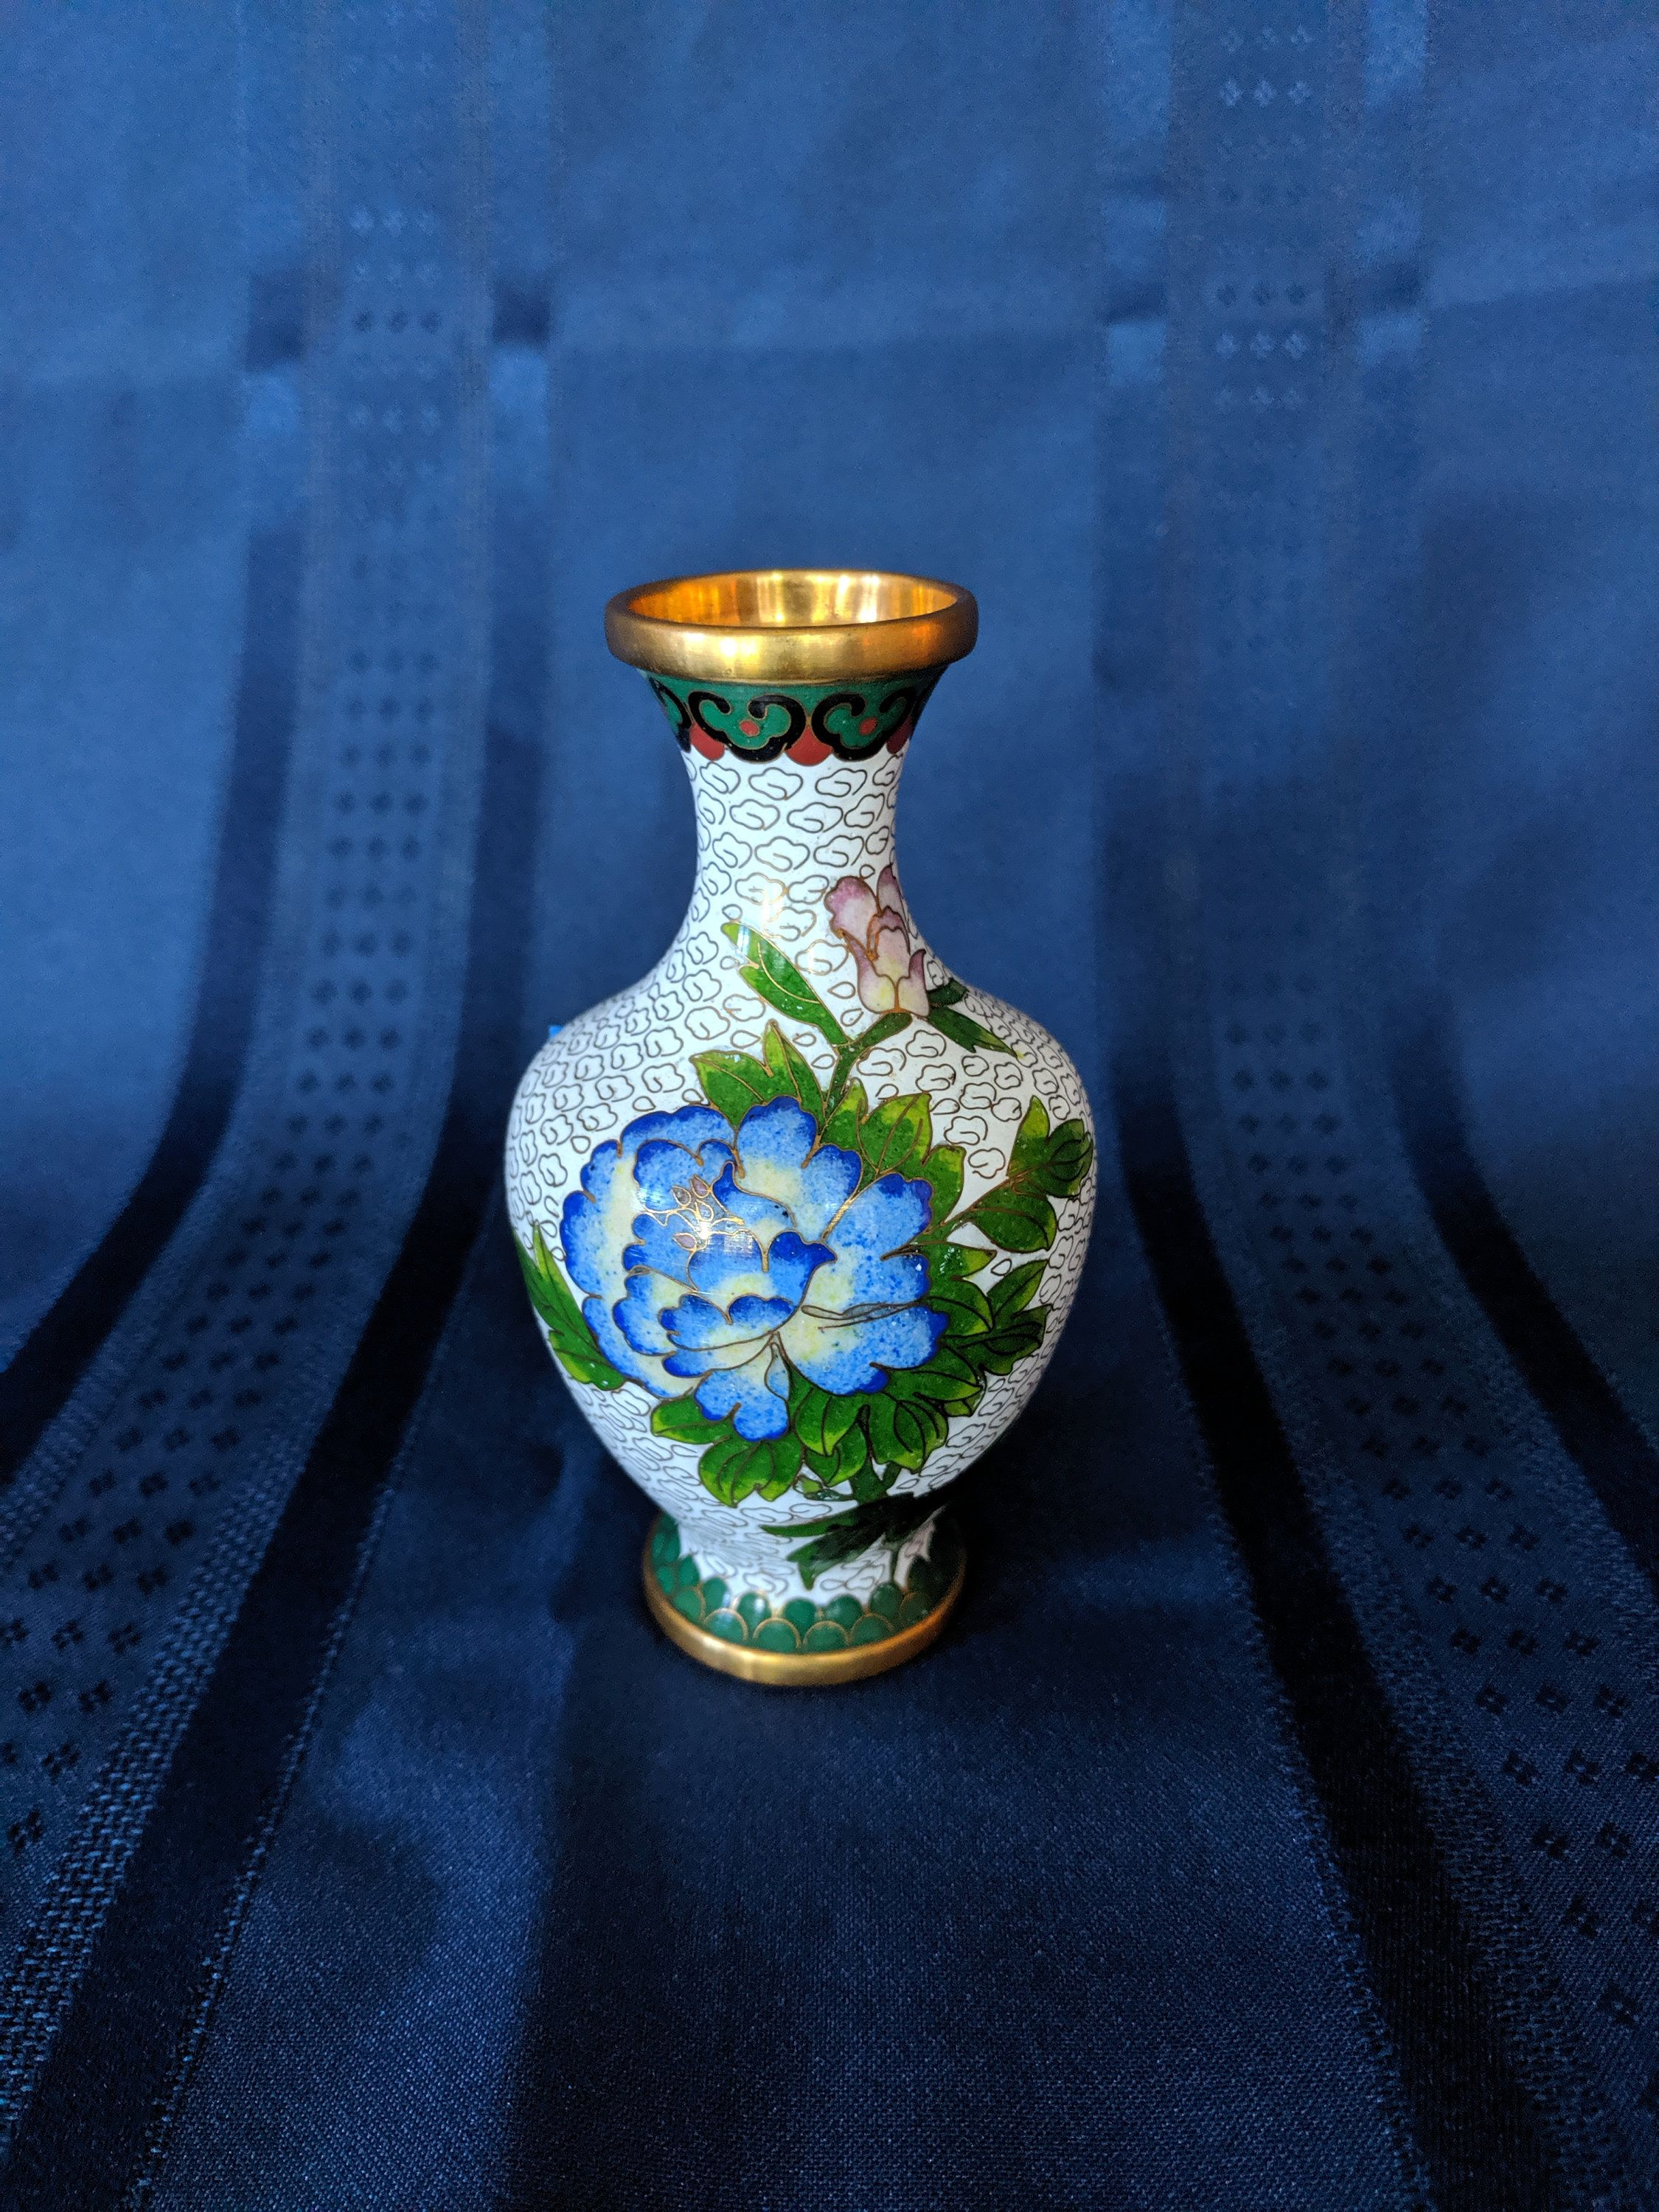 Items similar to Chinese Cloisonne Small Vase 5 Inch Enamel Blue Flowers, Blue Peony Flowers on Vase, Vintage Chinese Vase, Vintage, Collectible, Gift on Etsy #bluepeonies